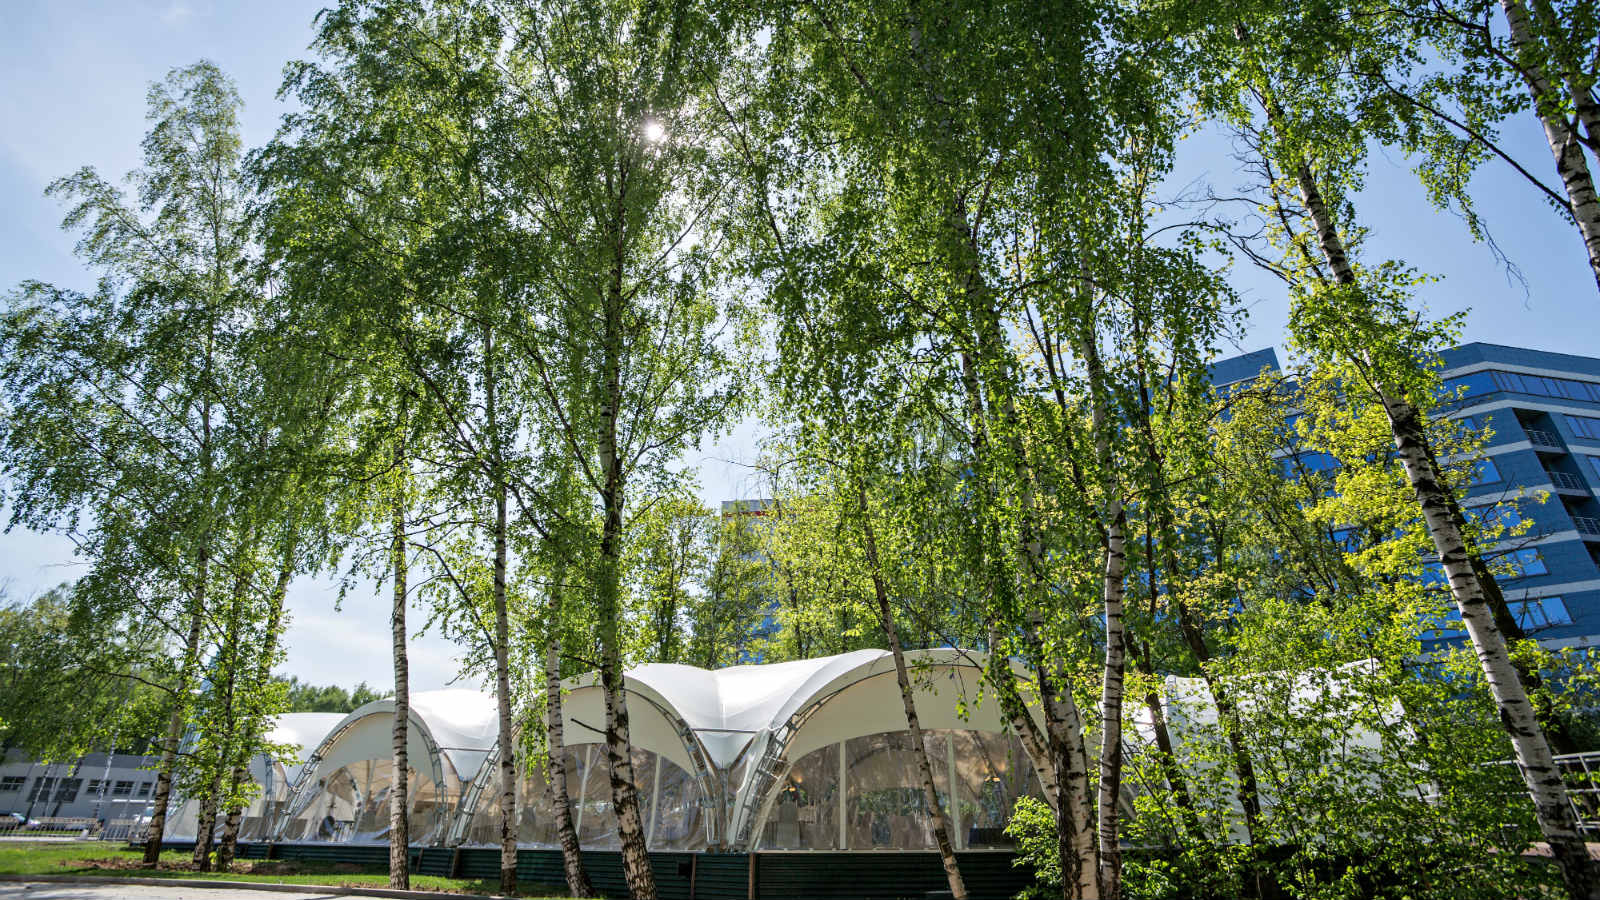 Summer heated tent for open-air events at Sheraton Moscow Sheremetyevo